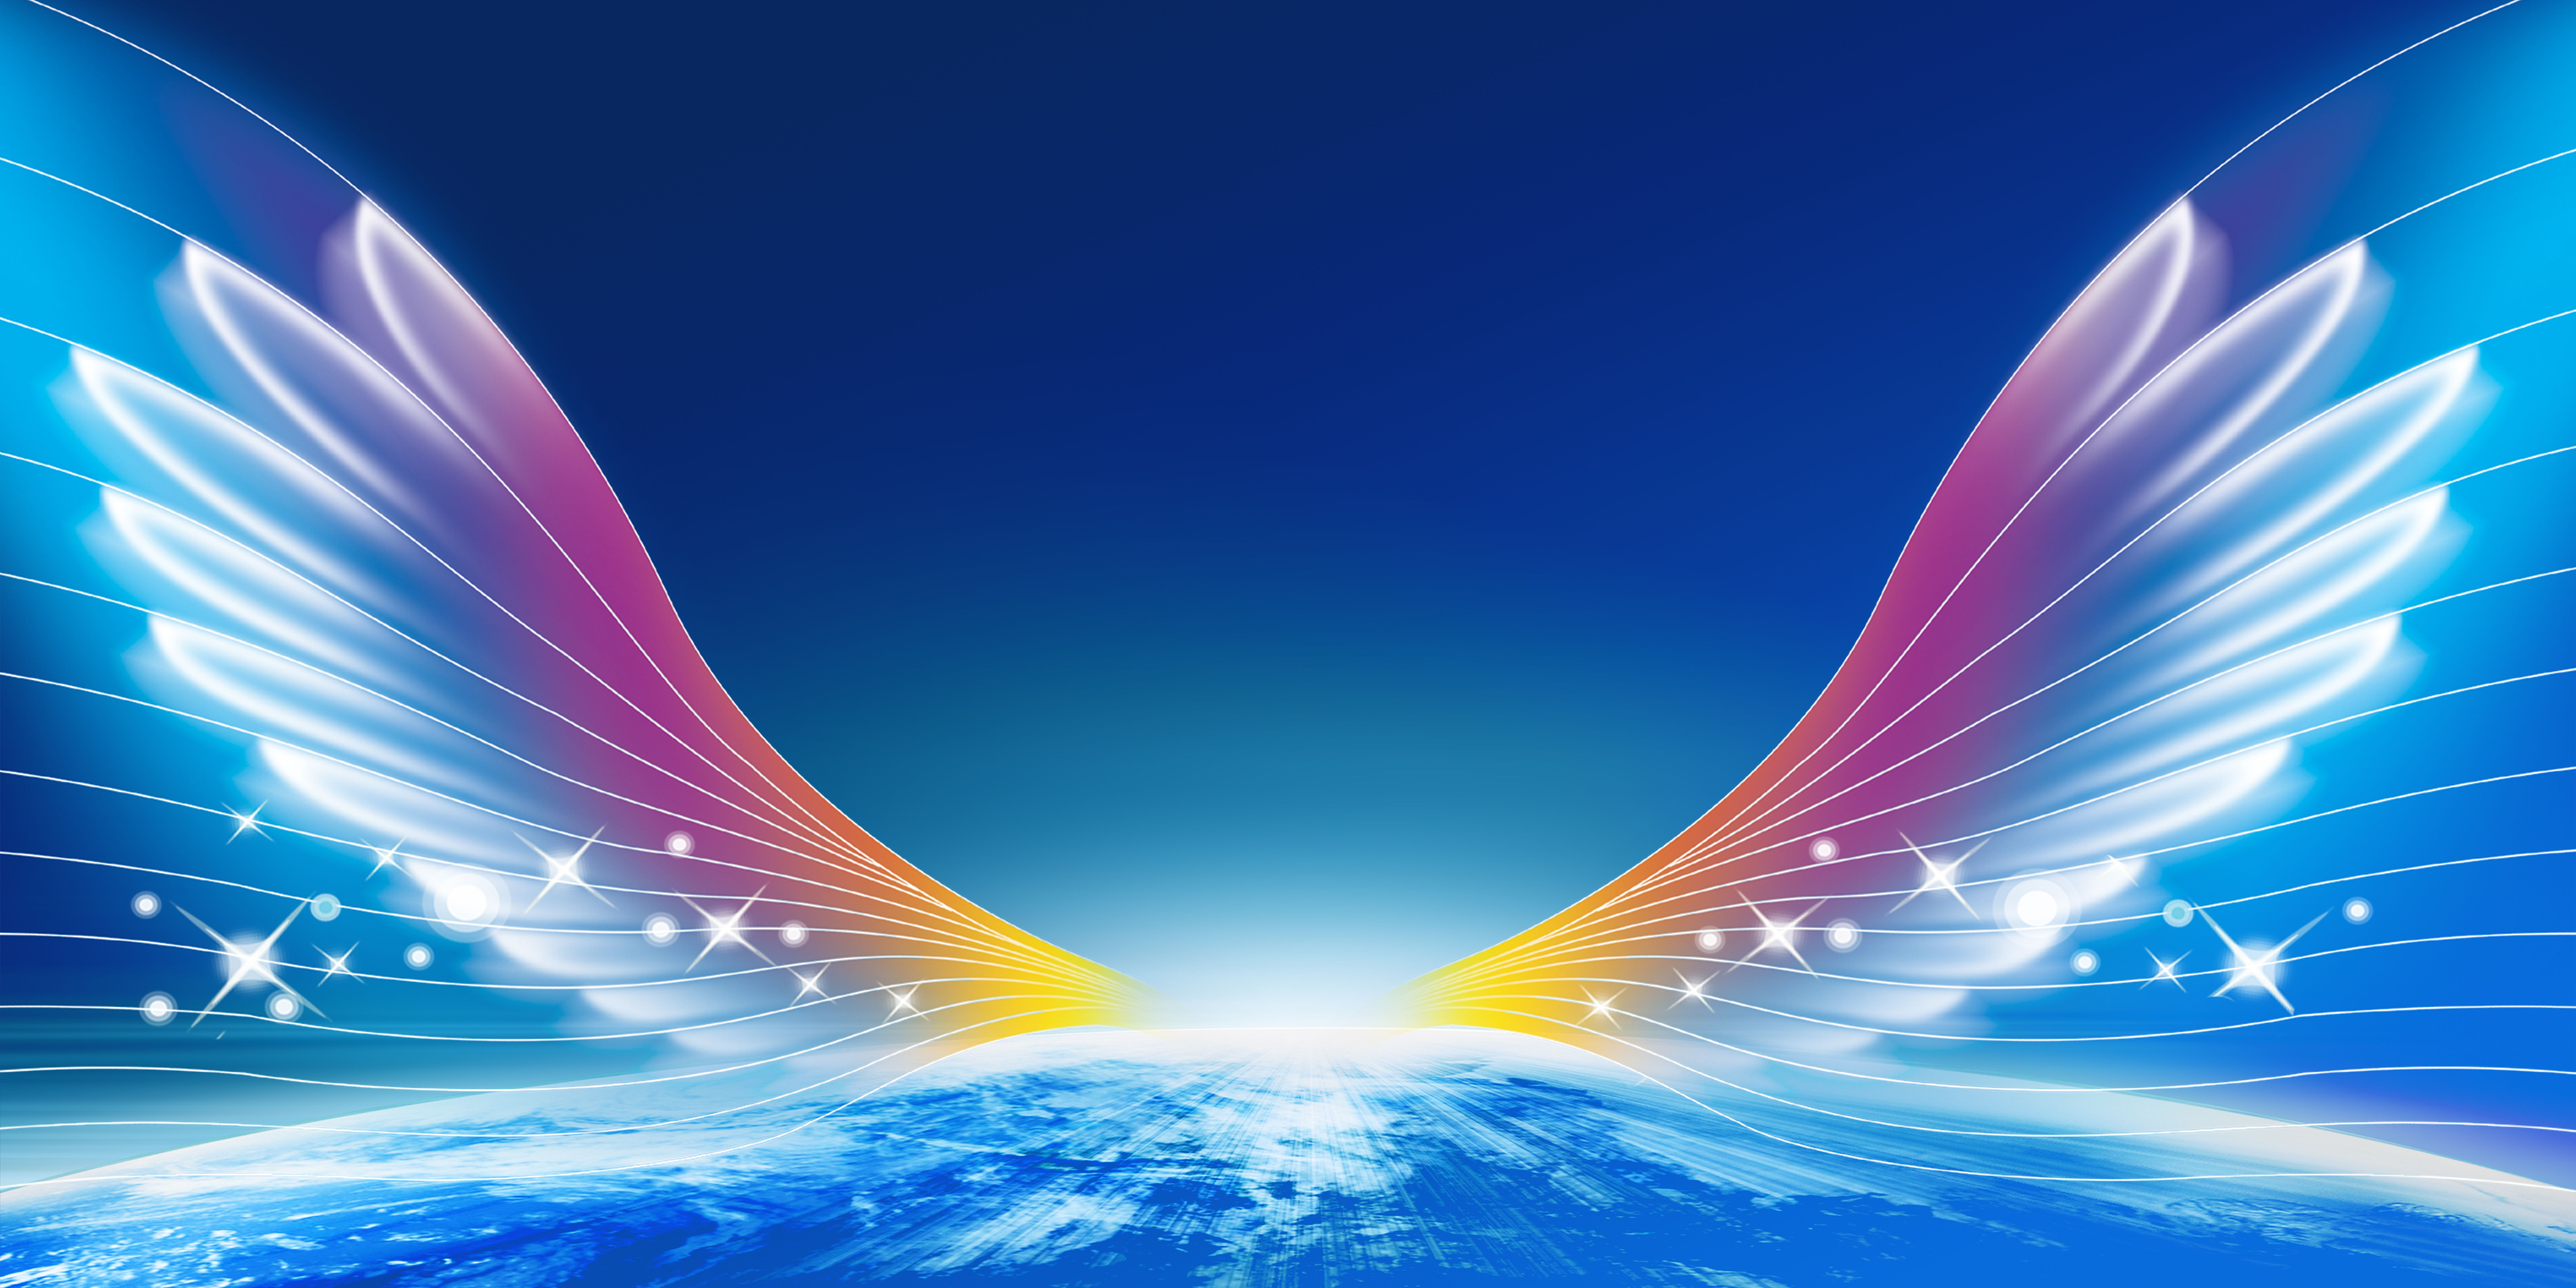 Looking To The Future Business Of Flying Poster New Background Images Digital Backdrops Background Images